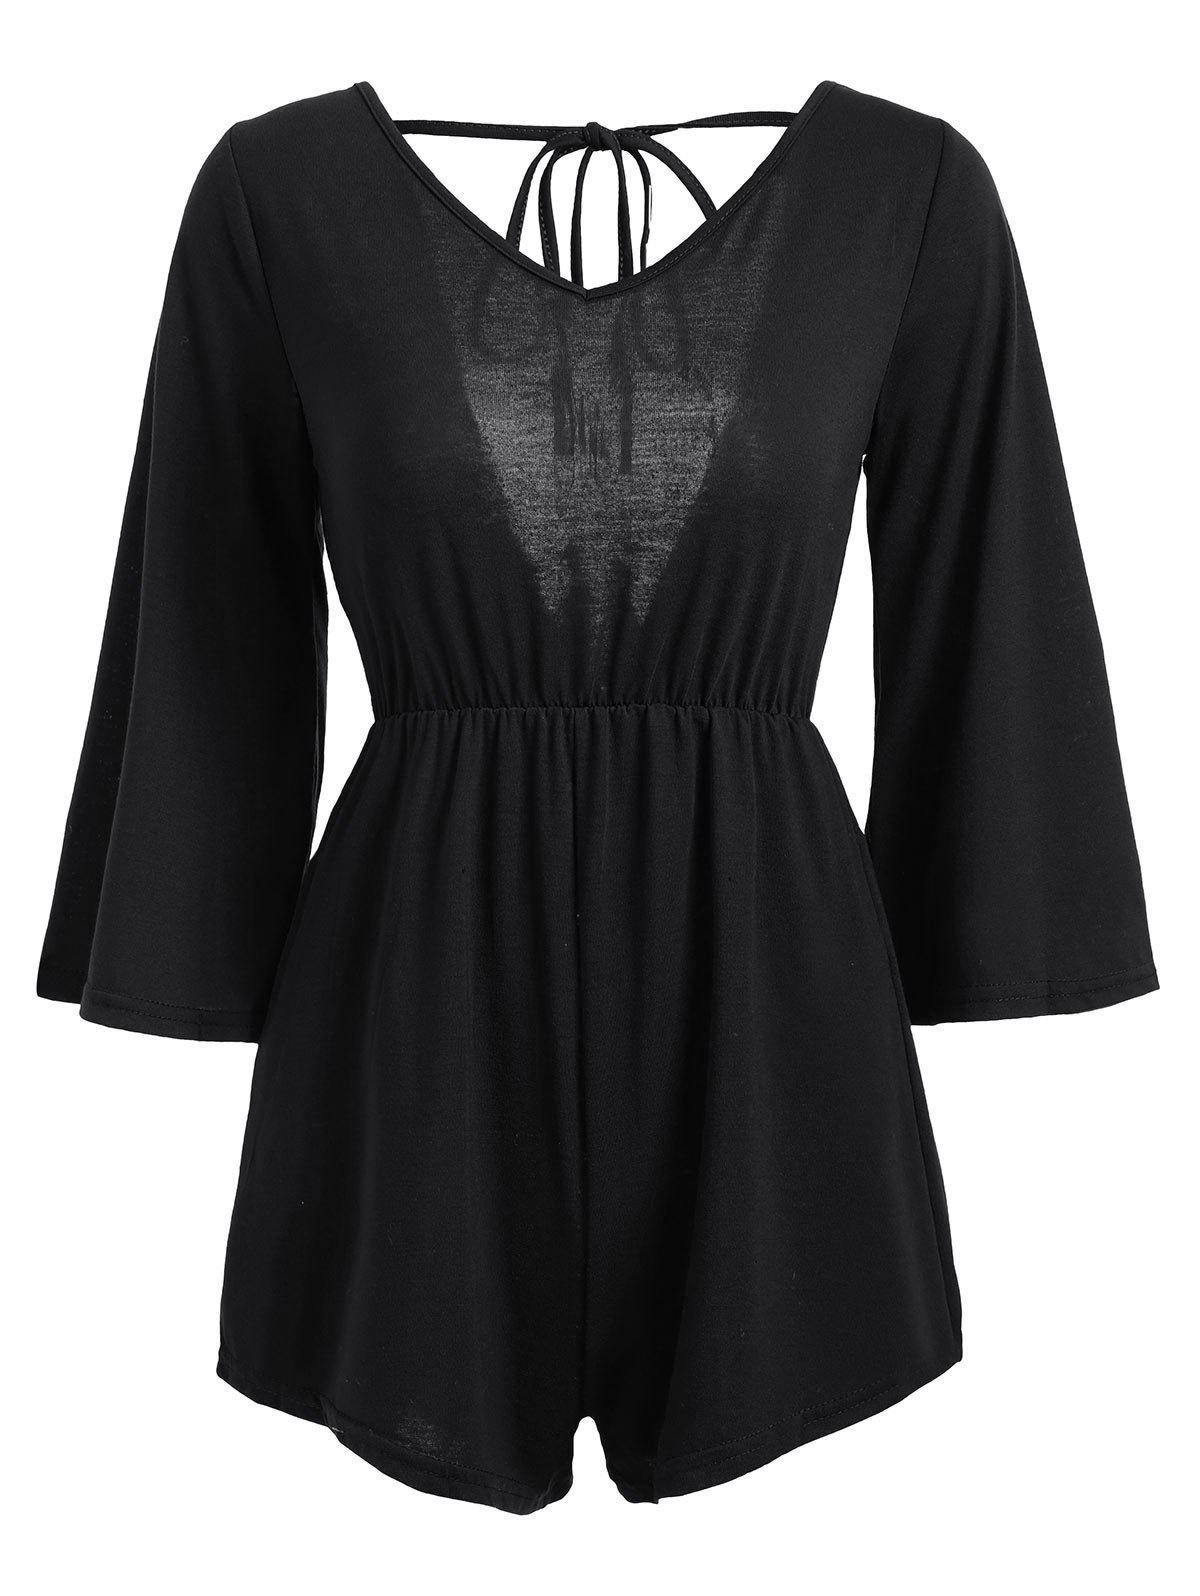 Tassel Open Back V Neck Romper - BLACK L